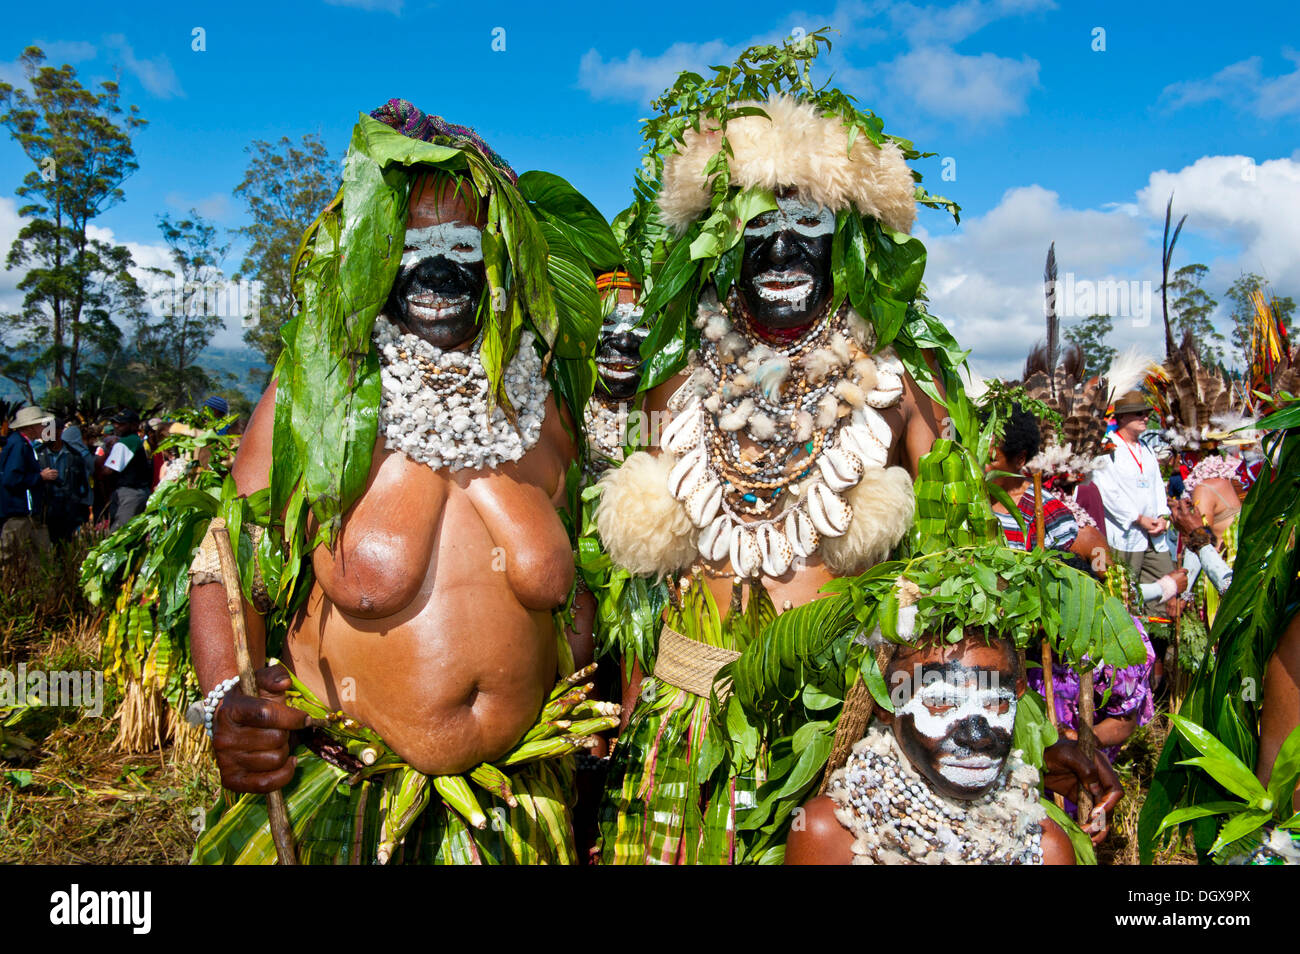 Members of a tribe in colourfully decorated costumes with face paint at the traditional sing-sing gathering, Hochland - Stock Image